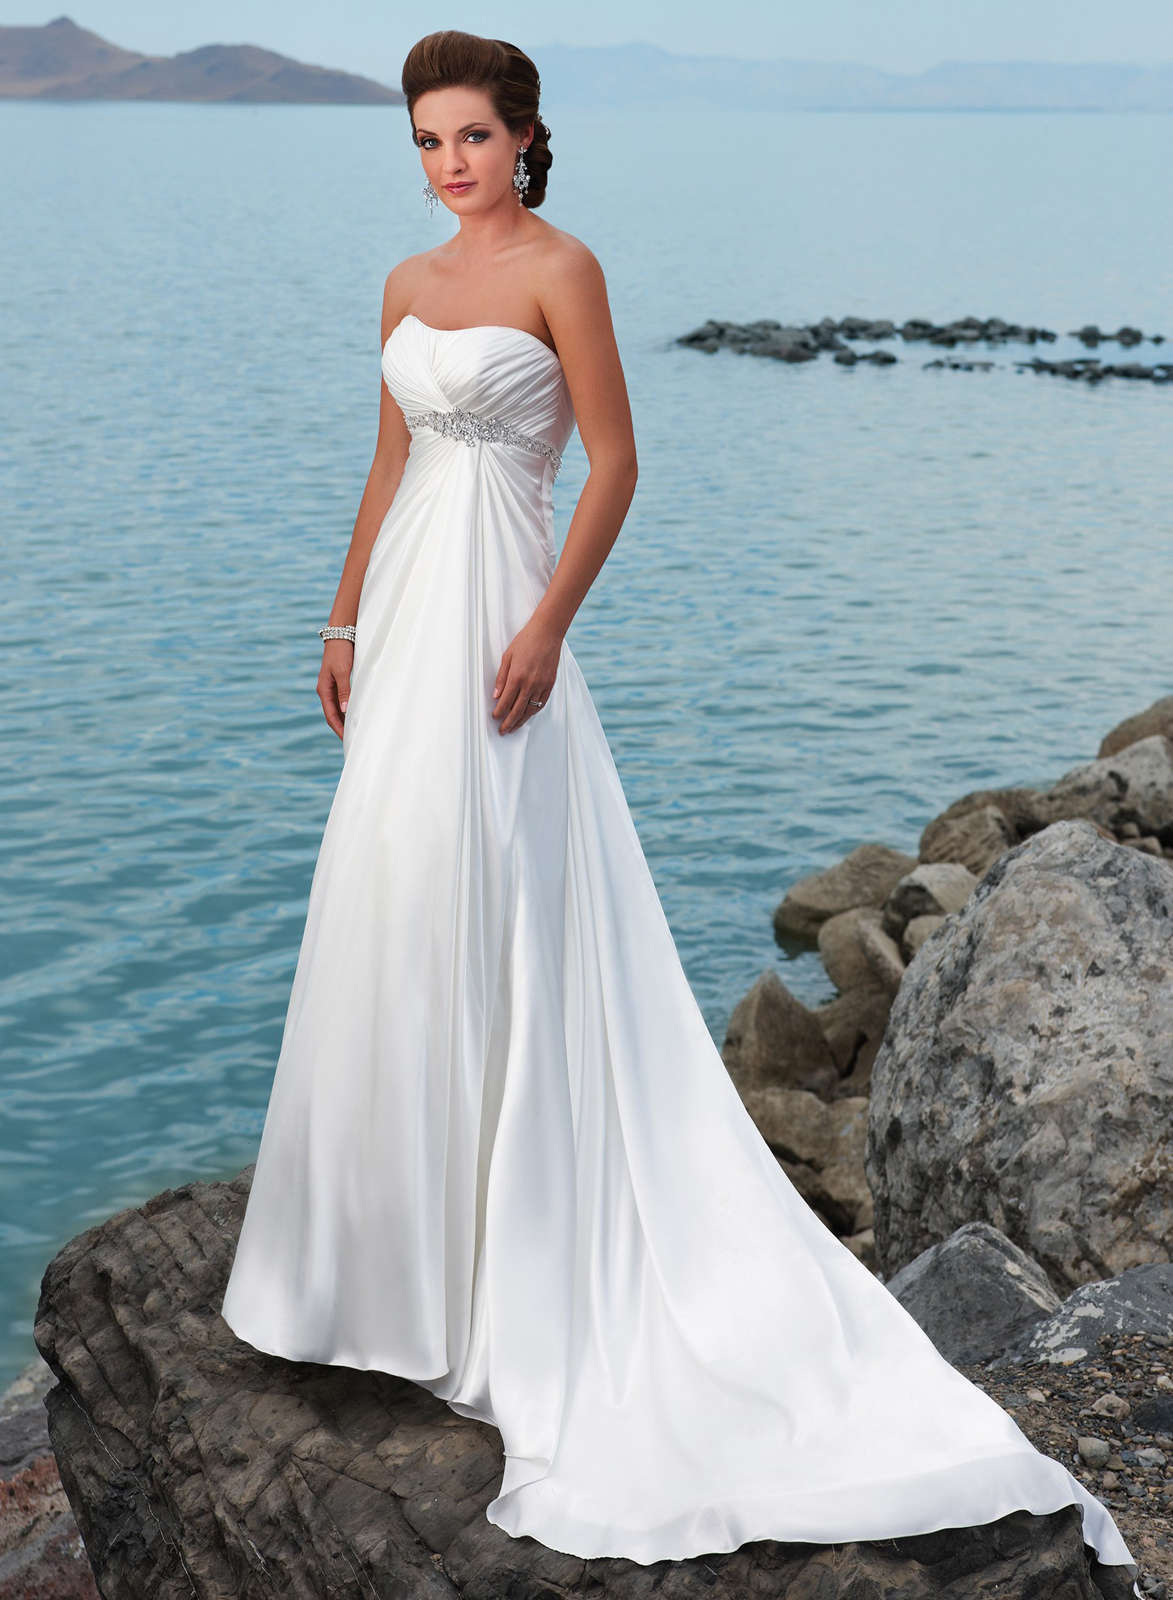 White Beach Wedding Dresses - white dresses for a beach wedding